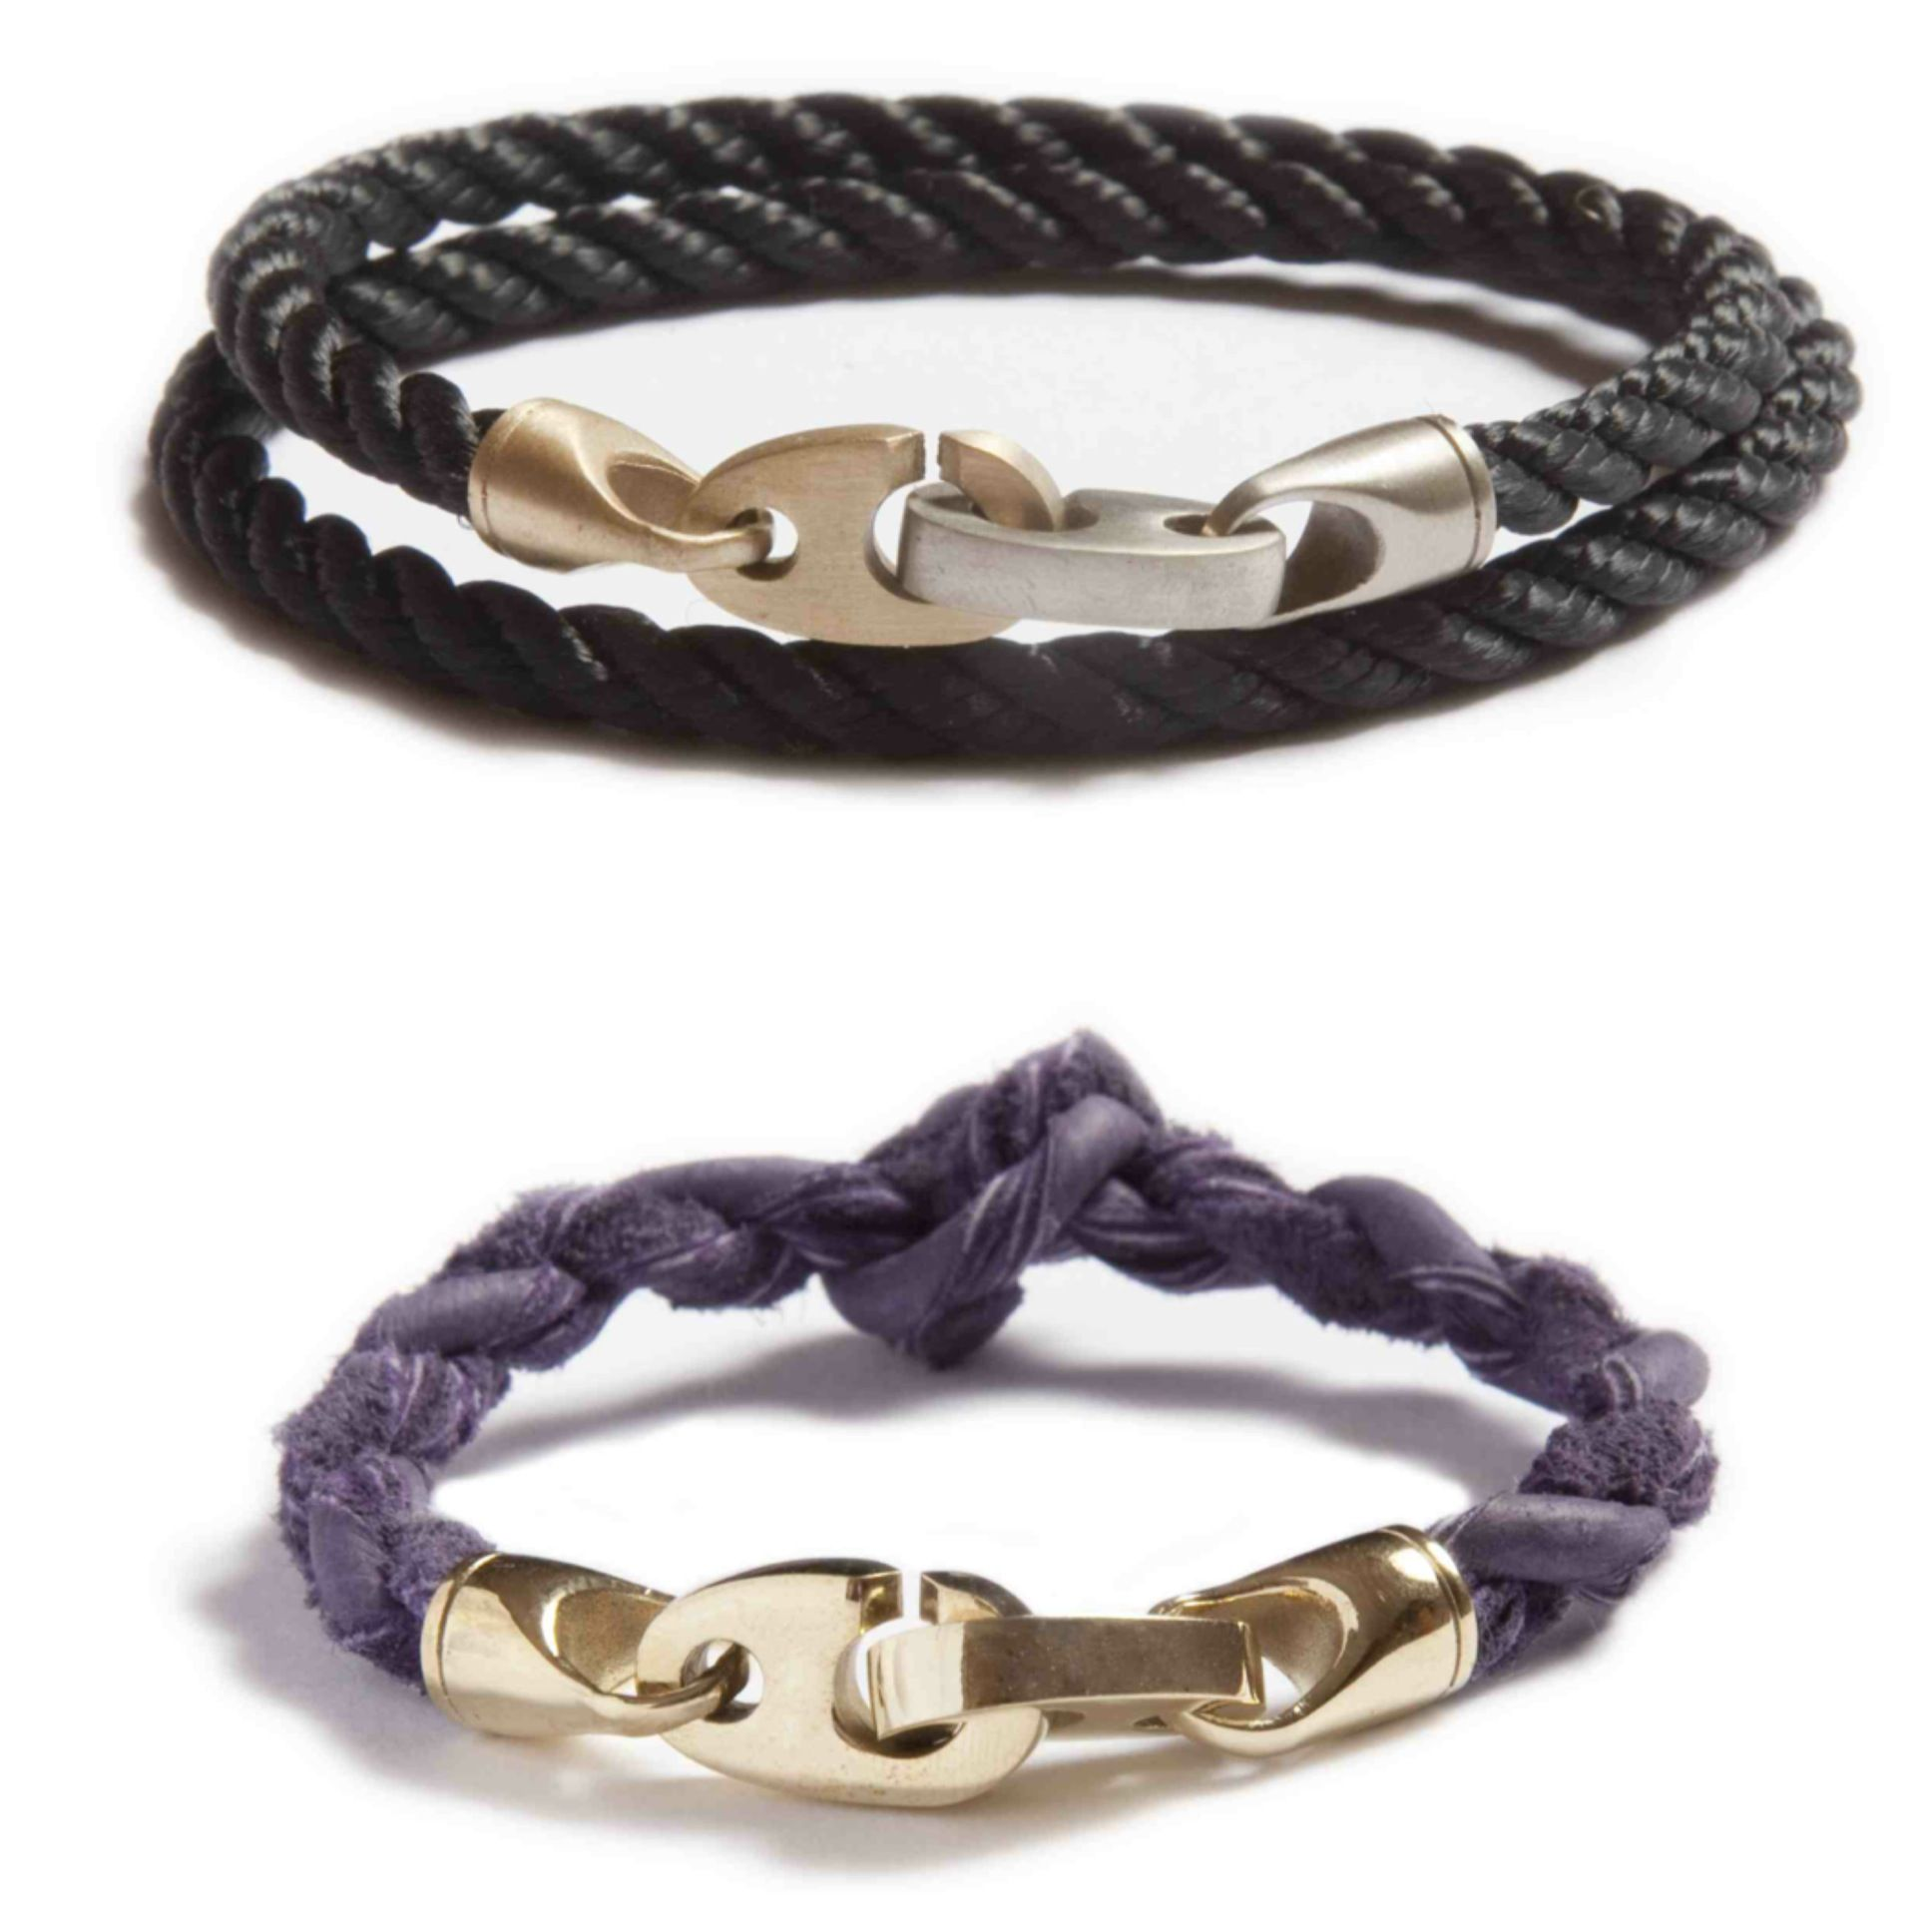 Our fall pick for guys and girls the mixed metal brak bracelet and